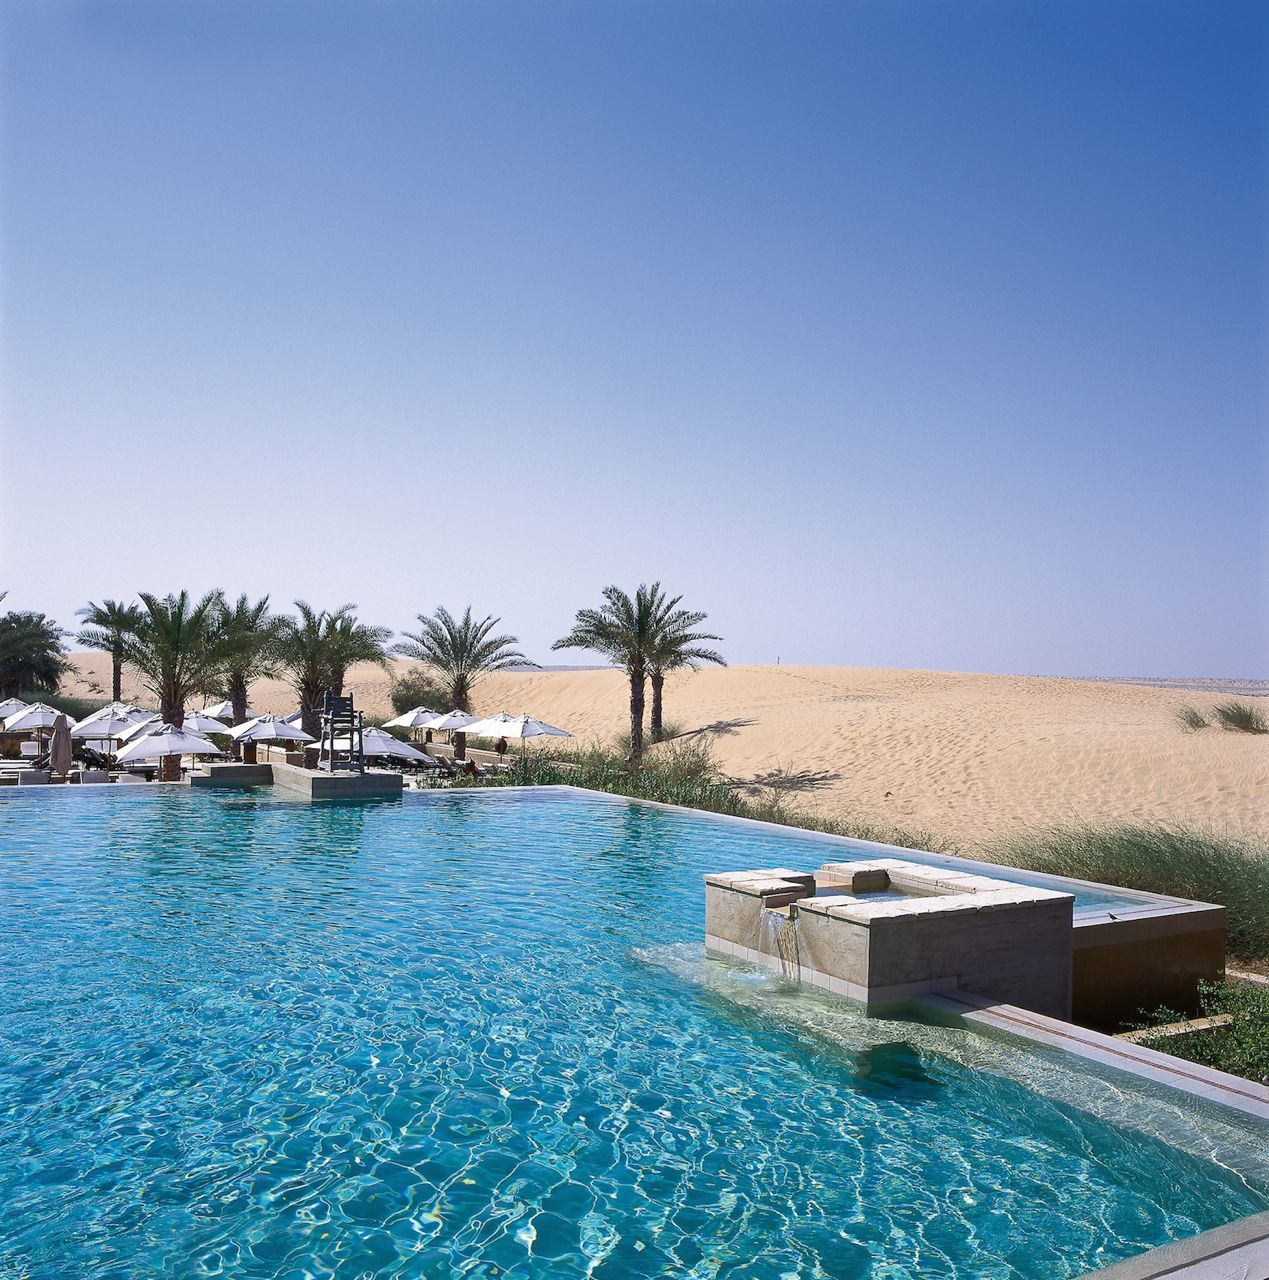 Pic 8 - Infinity Pool and Desert